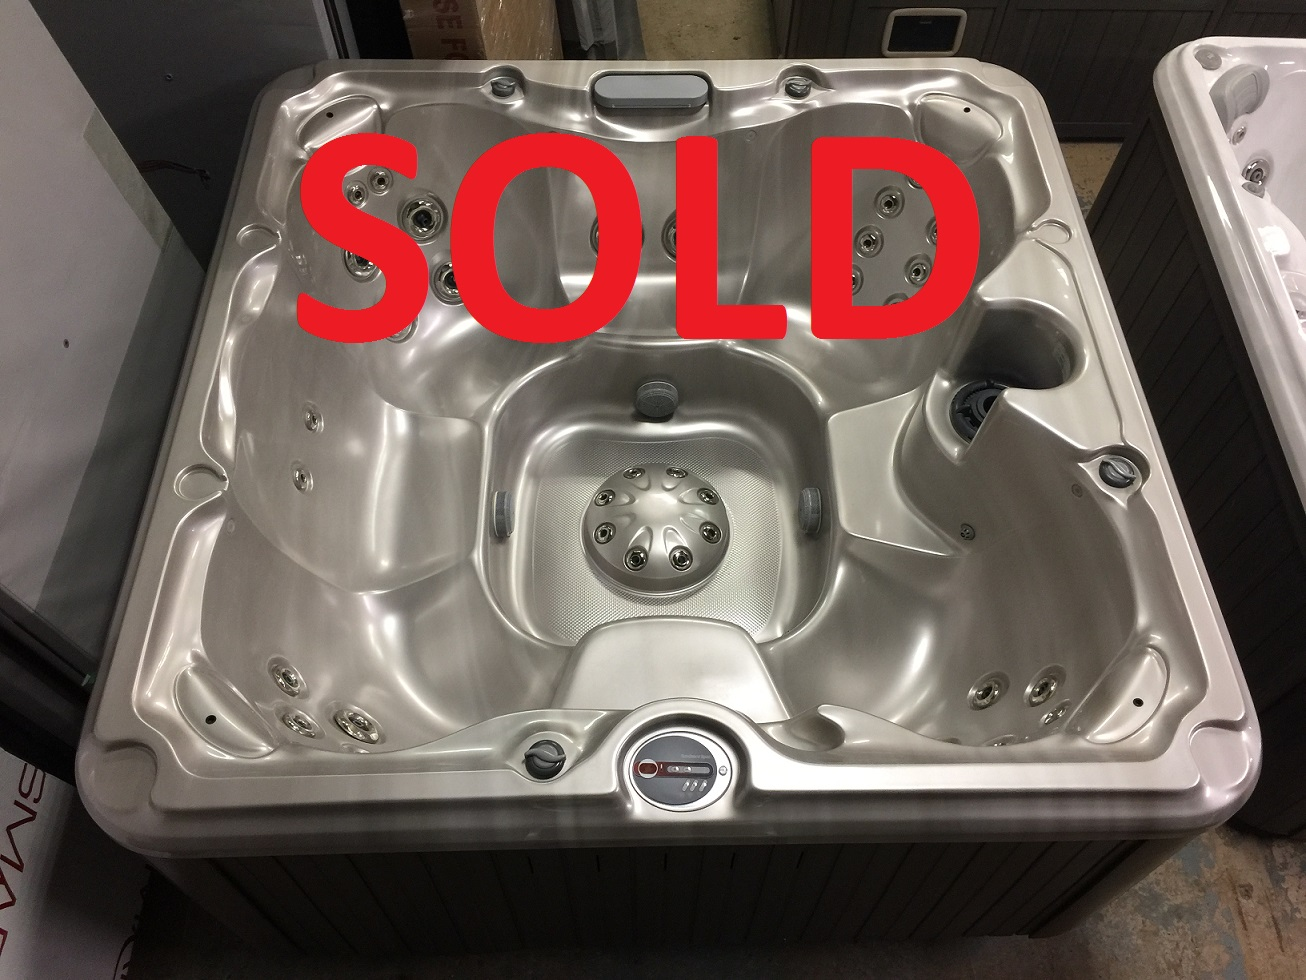 Certified pre-owned Sundance Spas 680 series Edison hot tub spa hot tubs Ontario